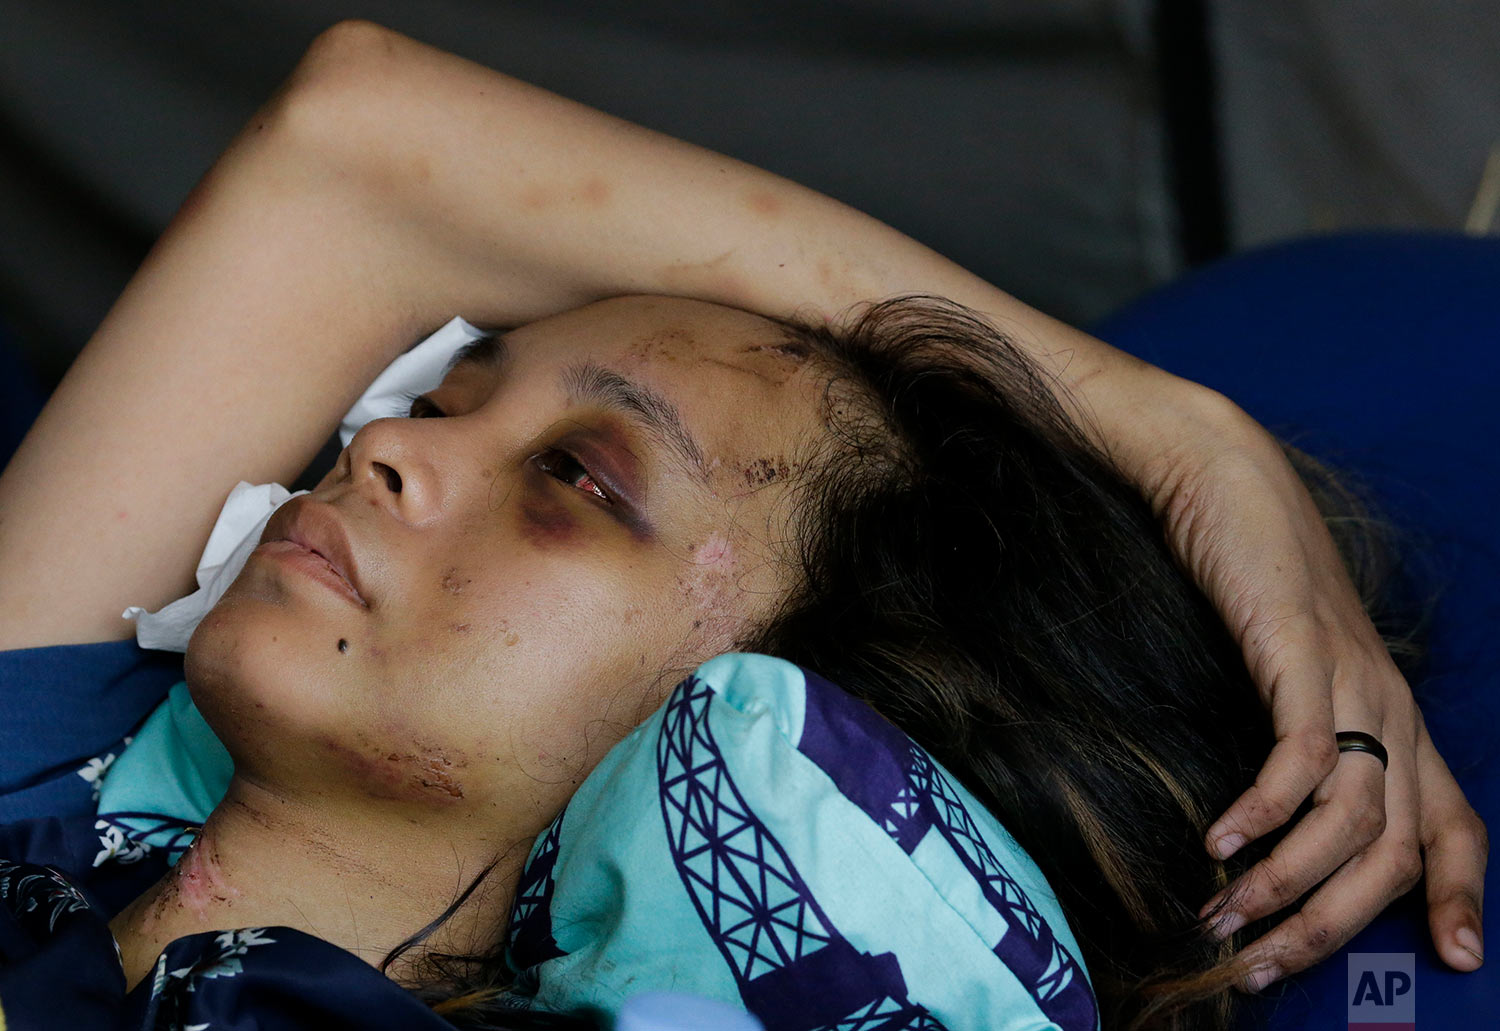 Anisa Cornelia rests as she lies inside a medical tent after being injured in a massive earthquake and tsunami in Palu, Central Sulawesi, Indonesia, Oct. 4, 2018. (AP Photo/Aaron Favila)